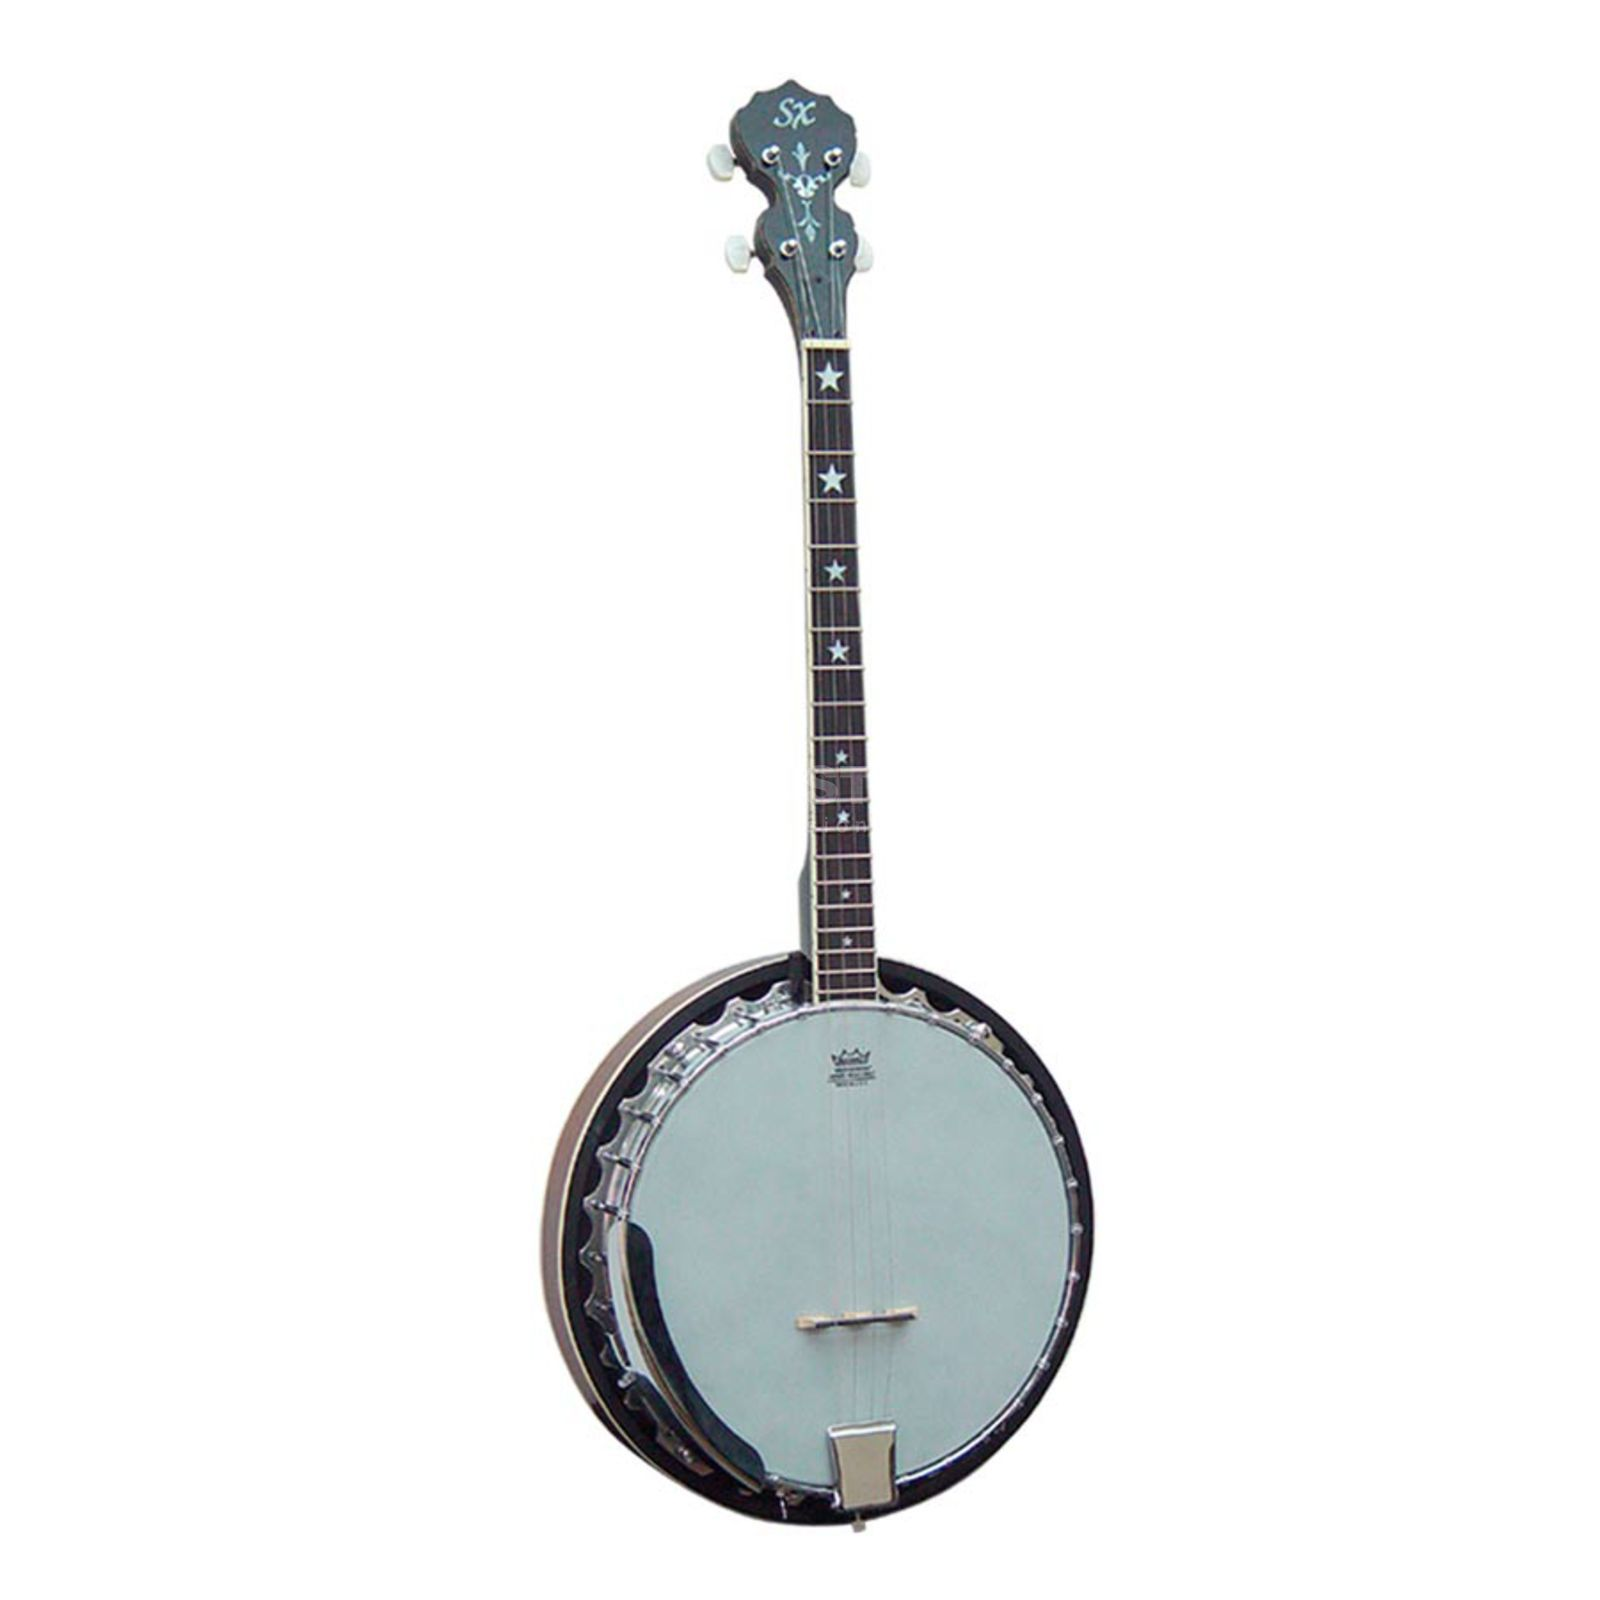 SX Guitars 4 String Tenor Banjo VSB Vintage Sunburst